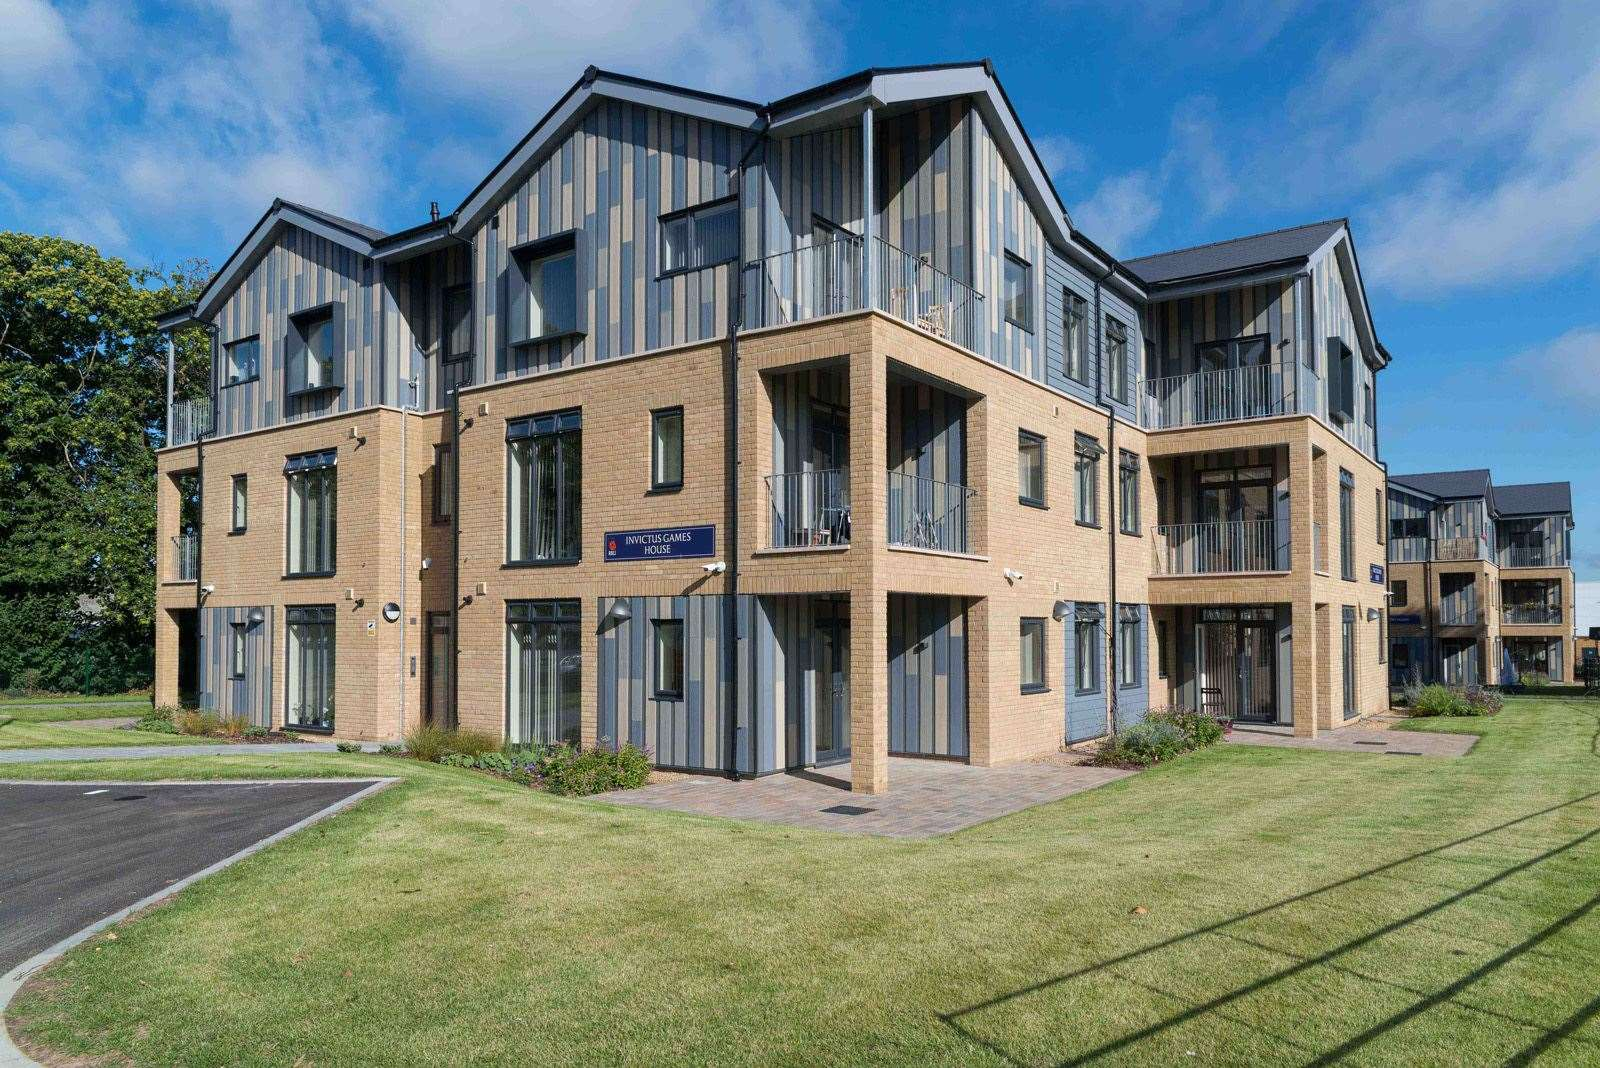 The Centenary Village provides specialised accommodation for ex-service personnel